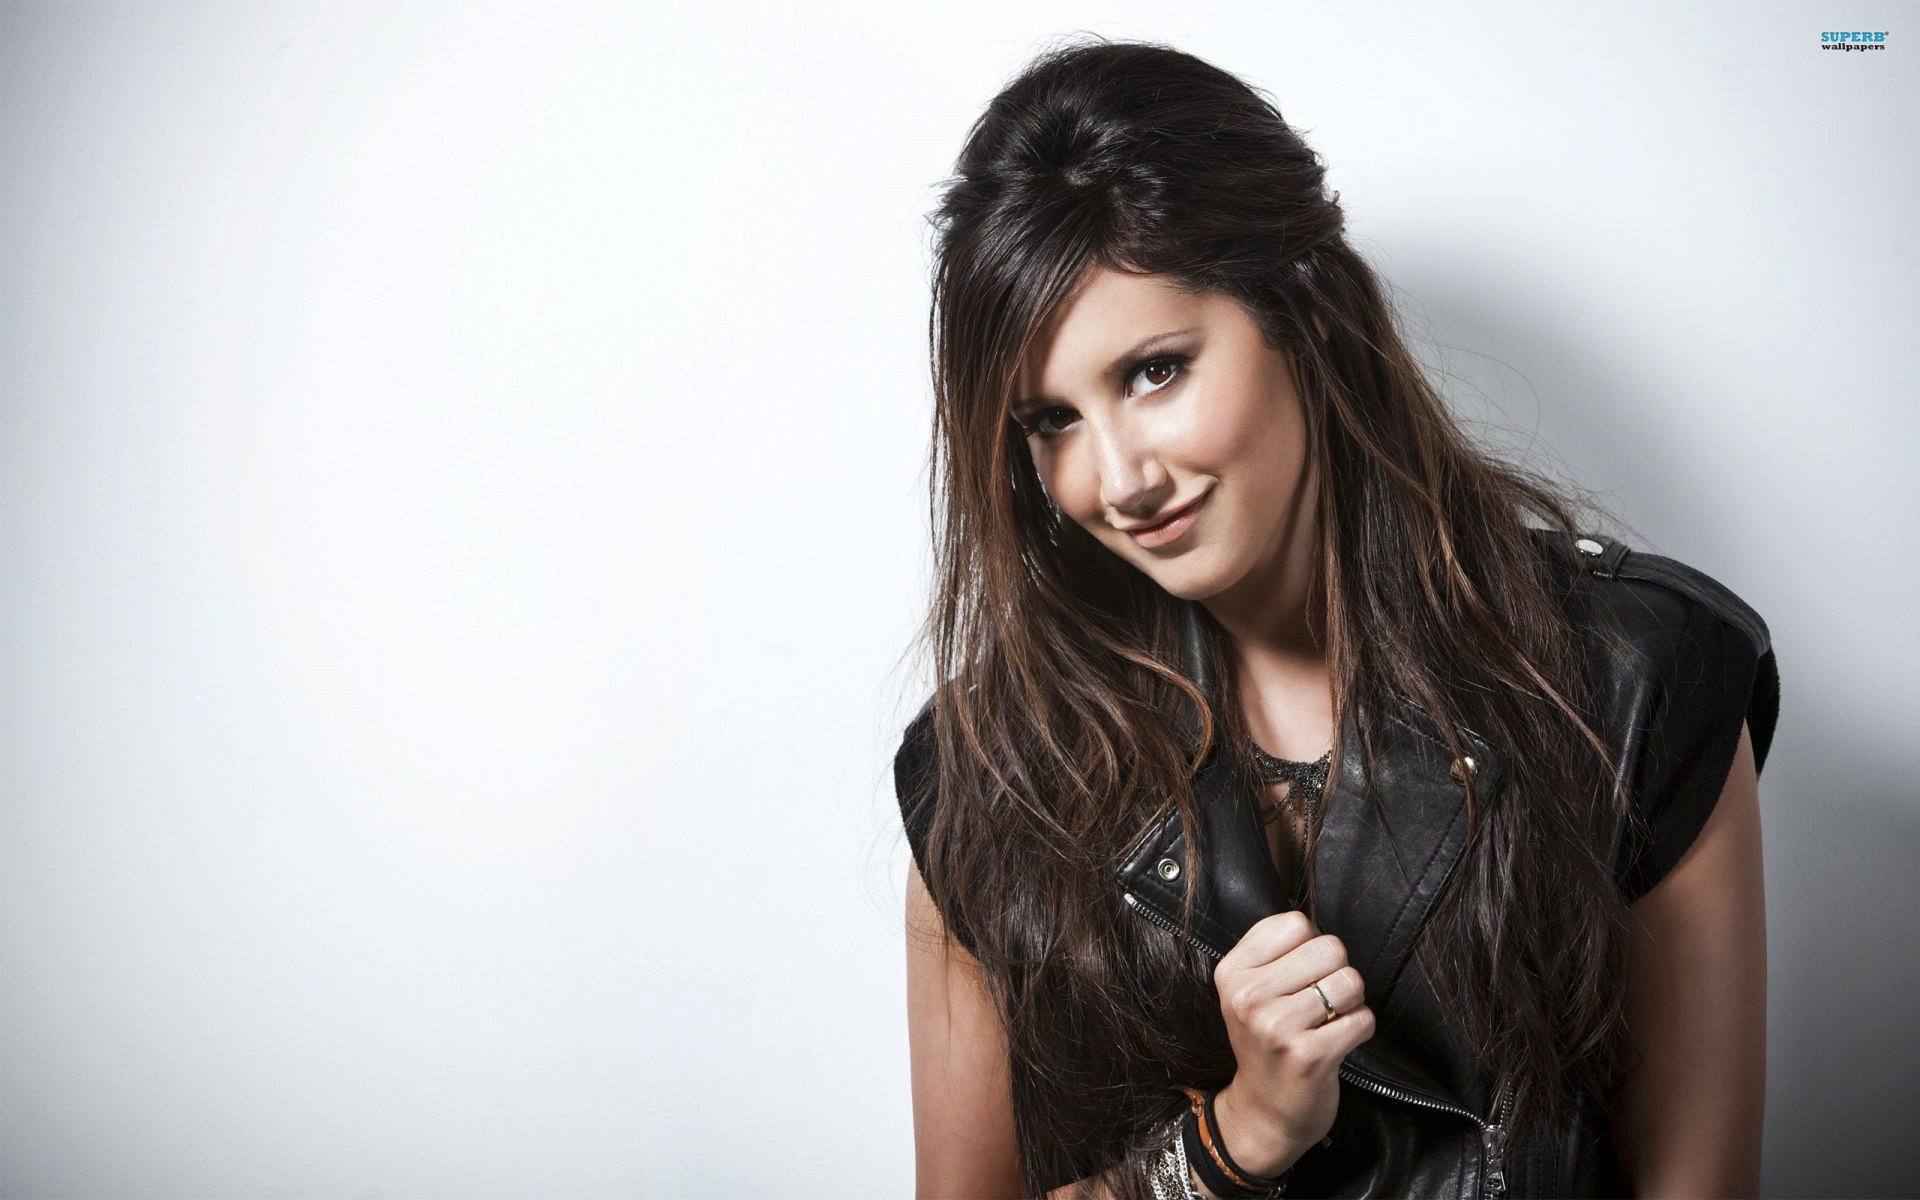 Cool Ashley Tisdale Wallpaper 19267 1920x1200 px